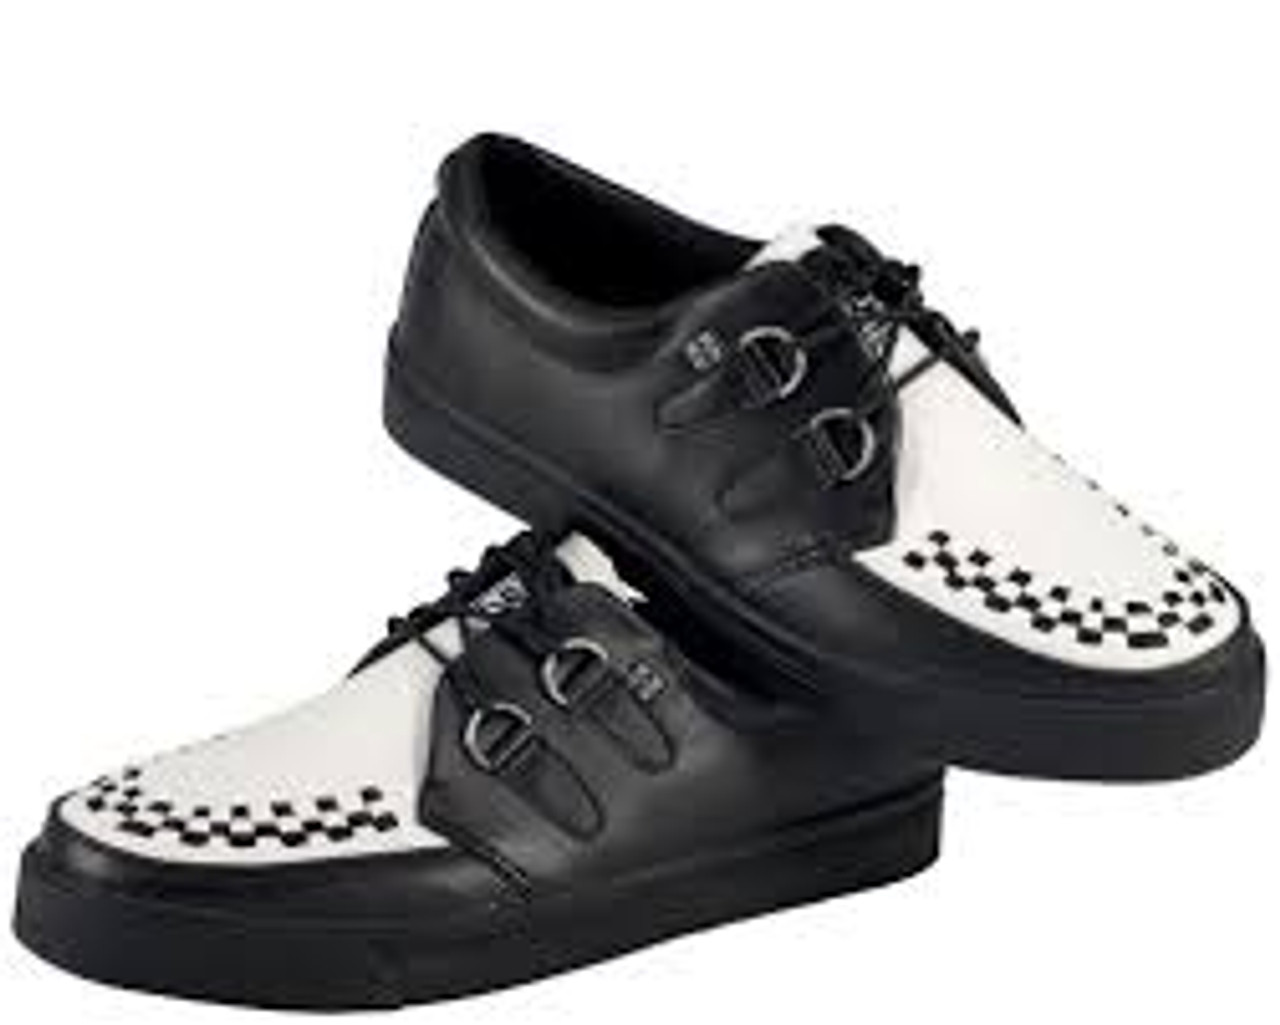 Black & White Leather with Black Interlace Creeper Sneaker-A6092